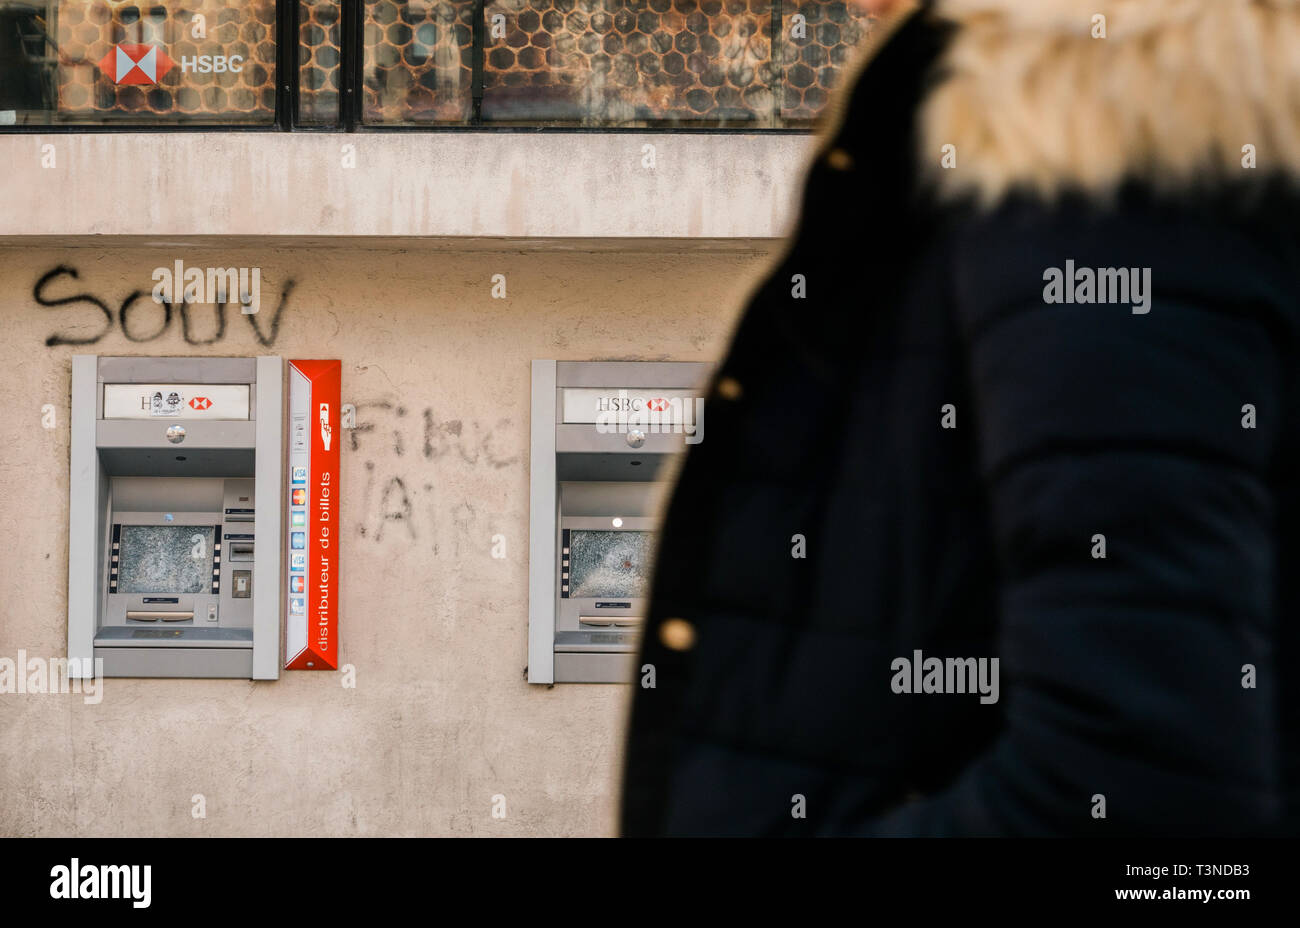 Atm Protest Stock Photos & Atm Protest Stock Images - Alamy